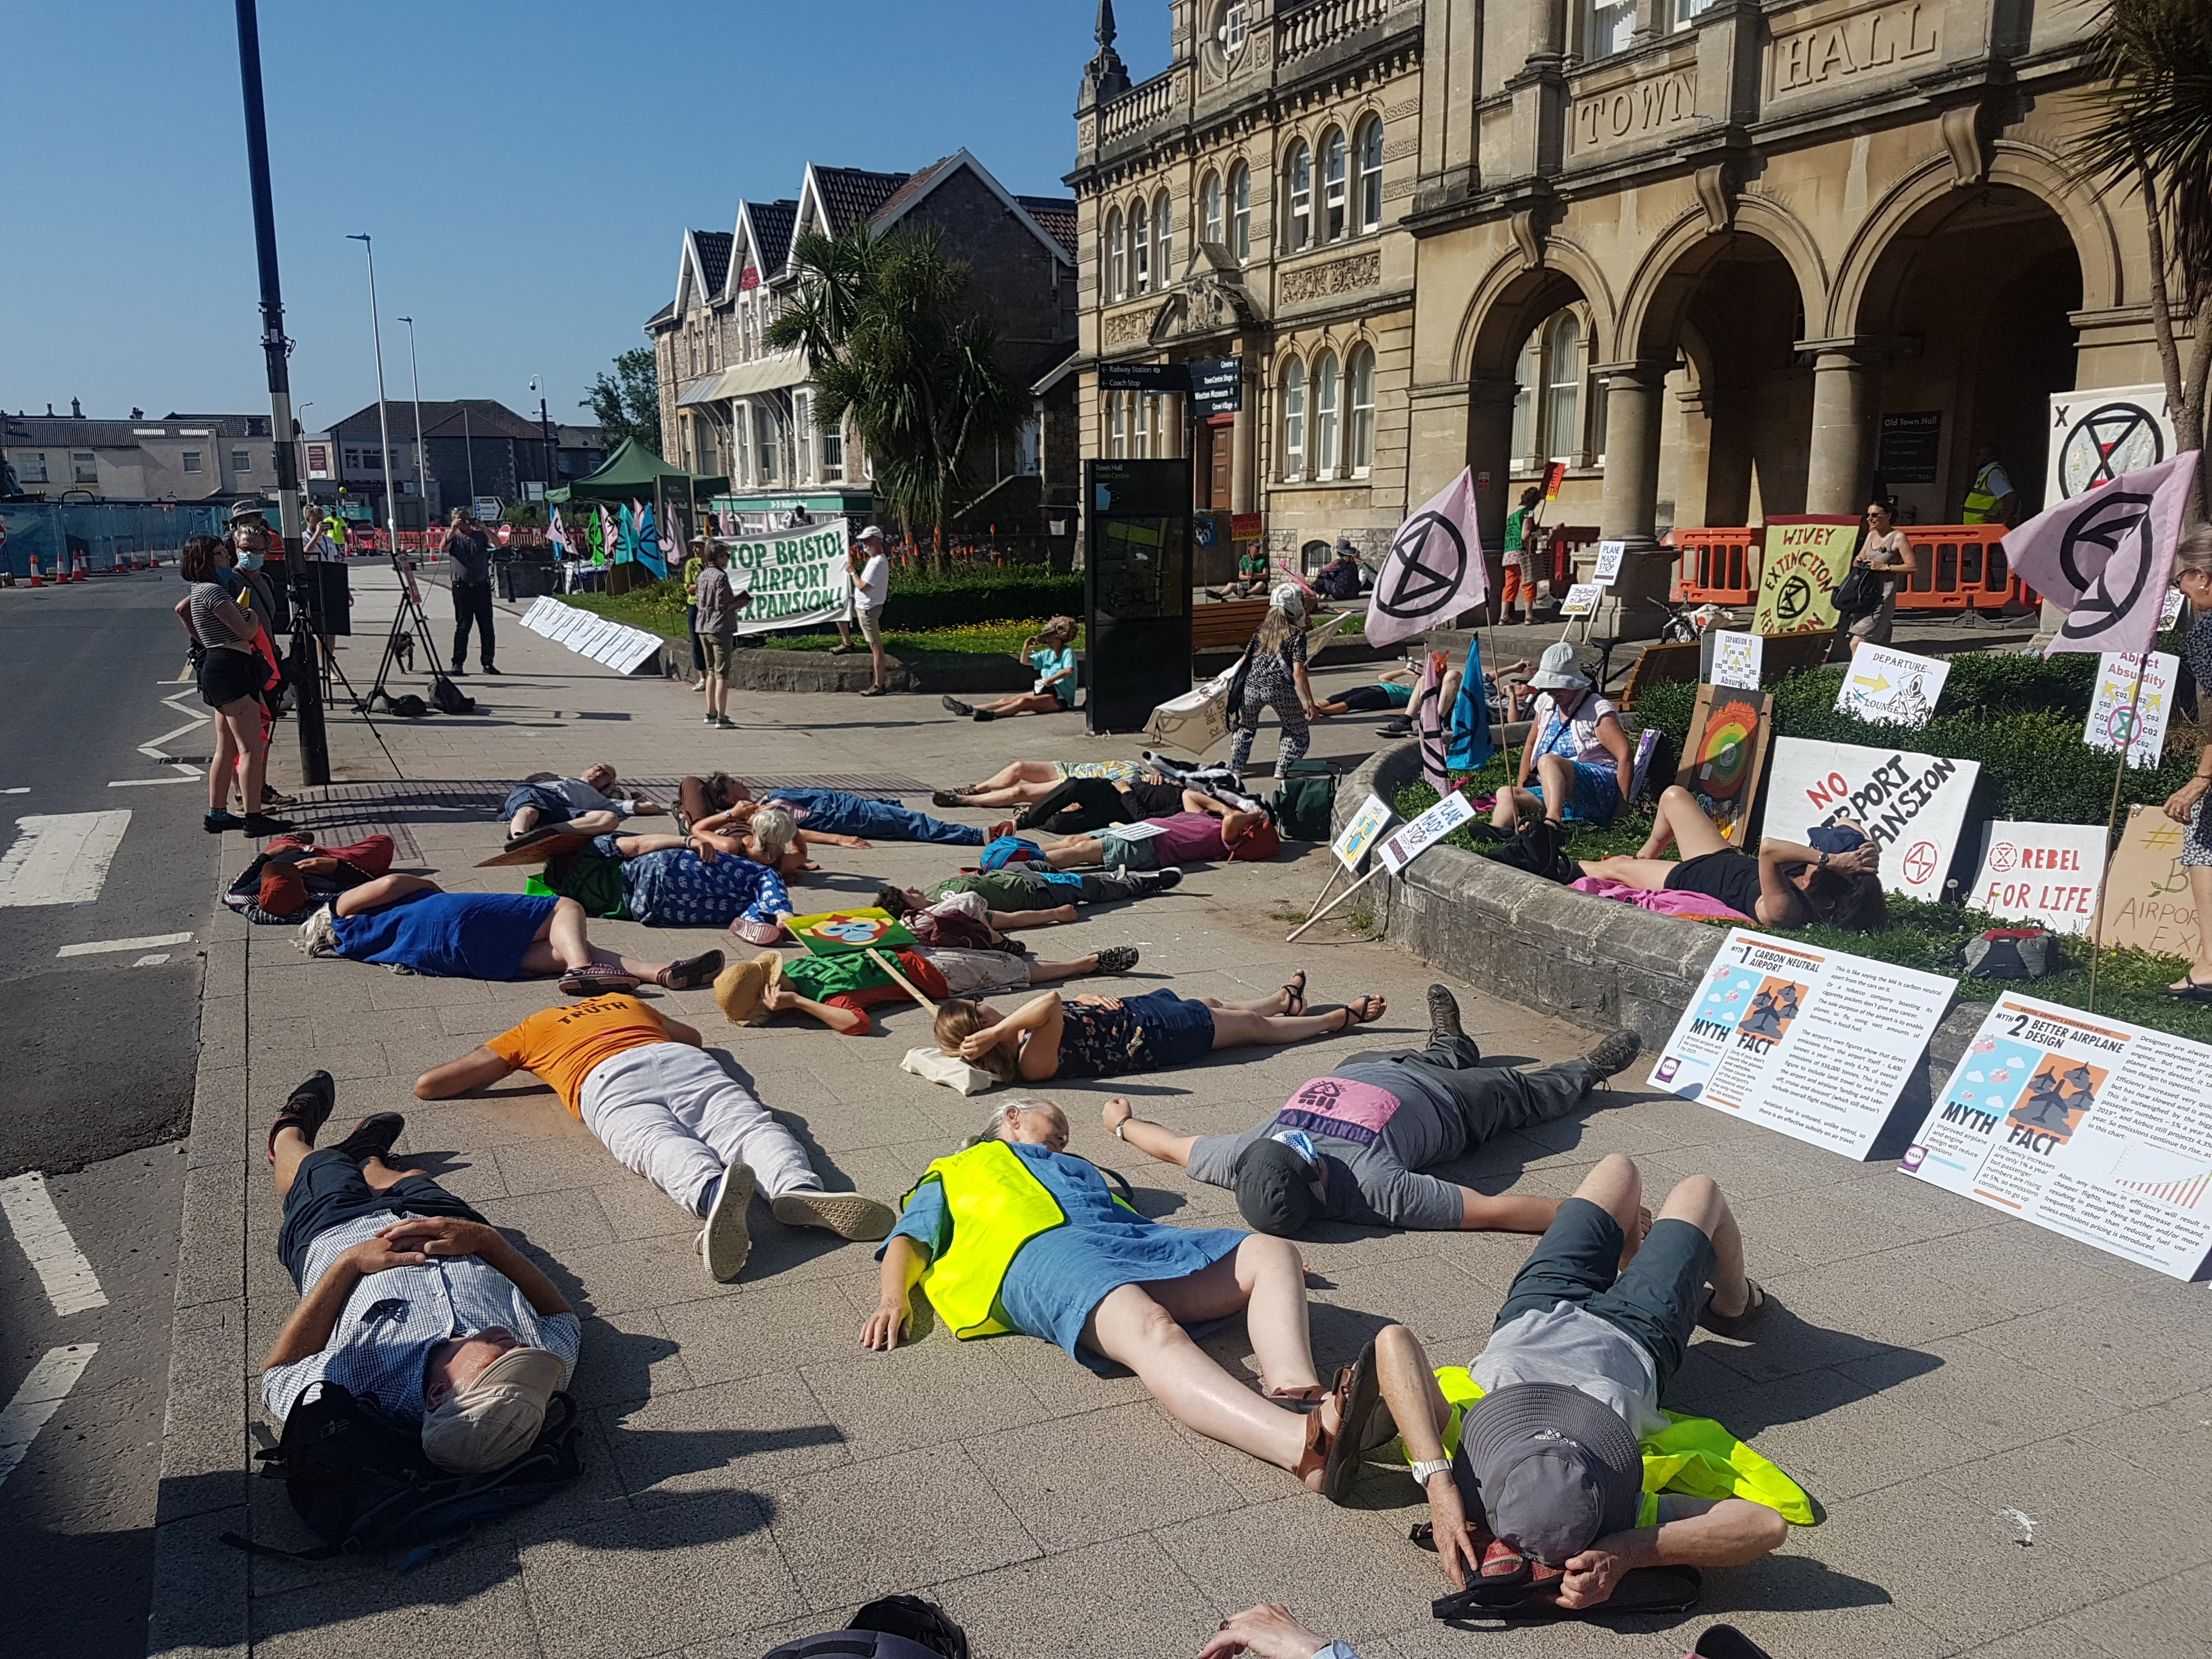 A dozen people lie on the floor pretending to be dead in protest.